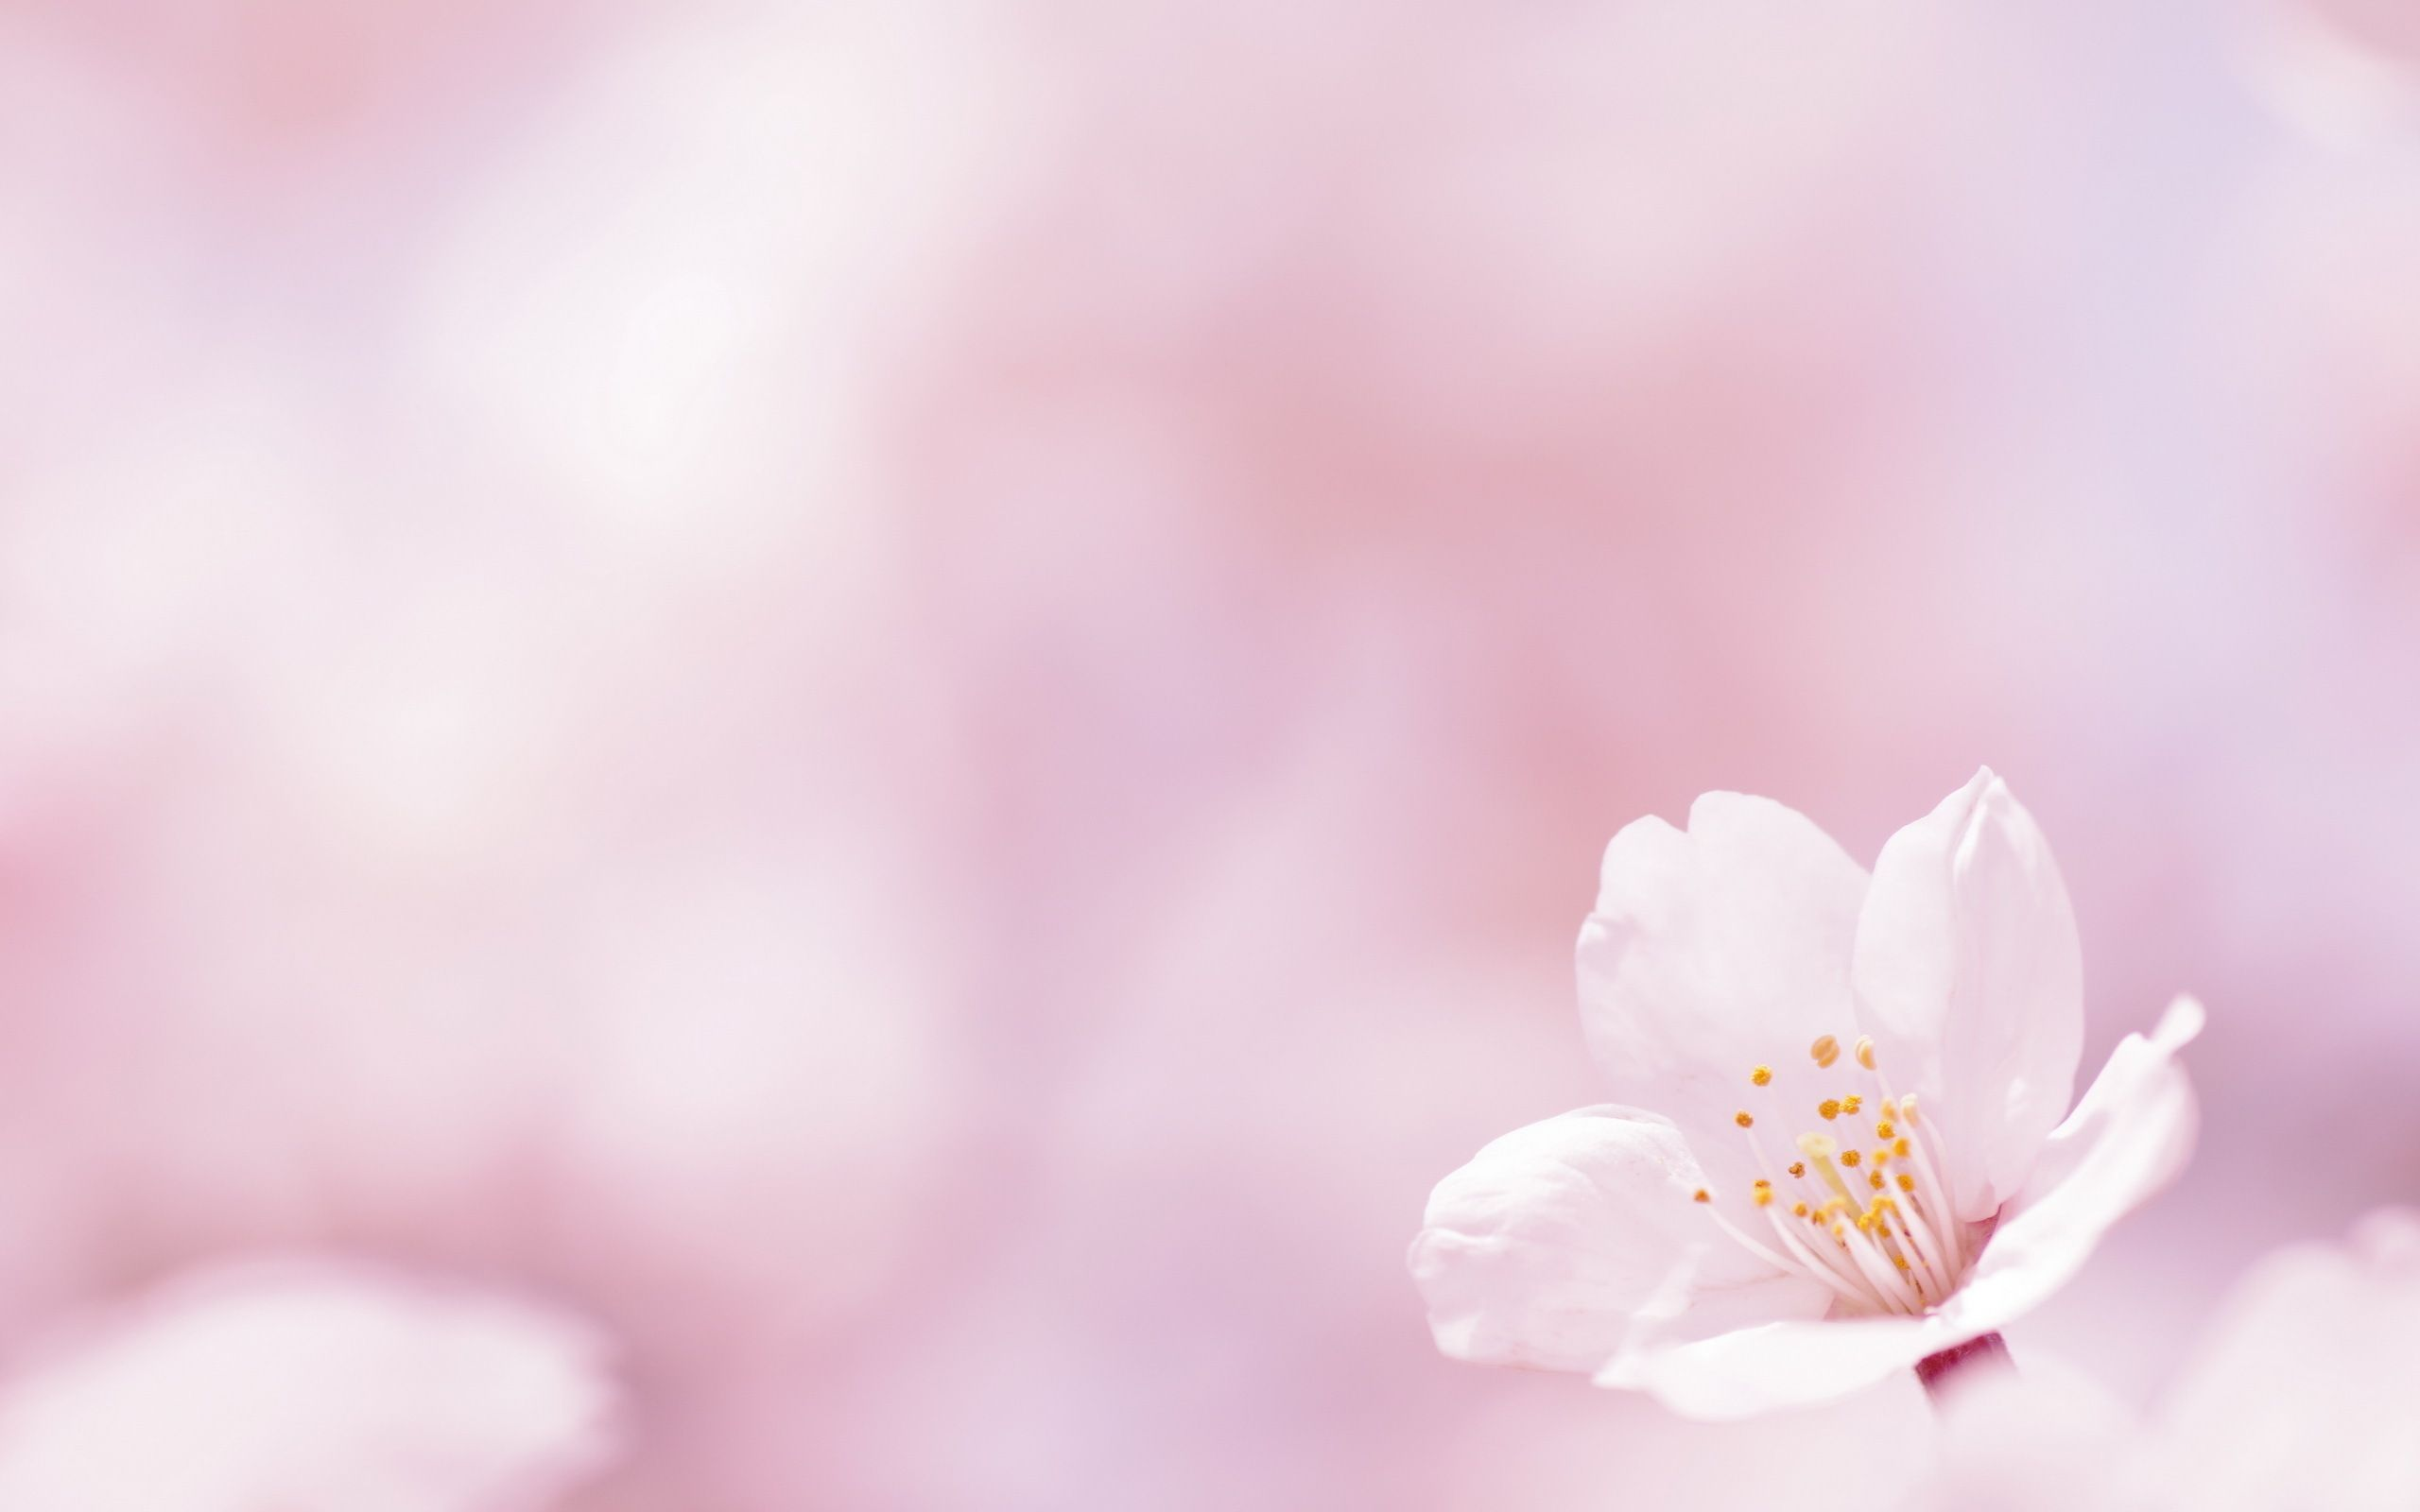 Flower Wallpapers Pink Hd Resolution Natures Wallpapers In 2018